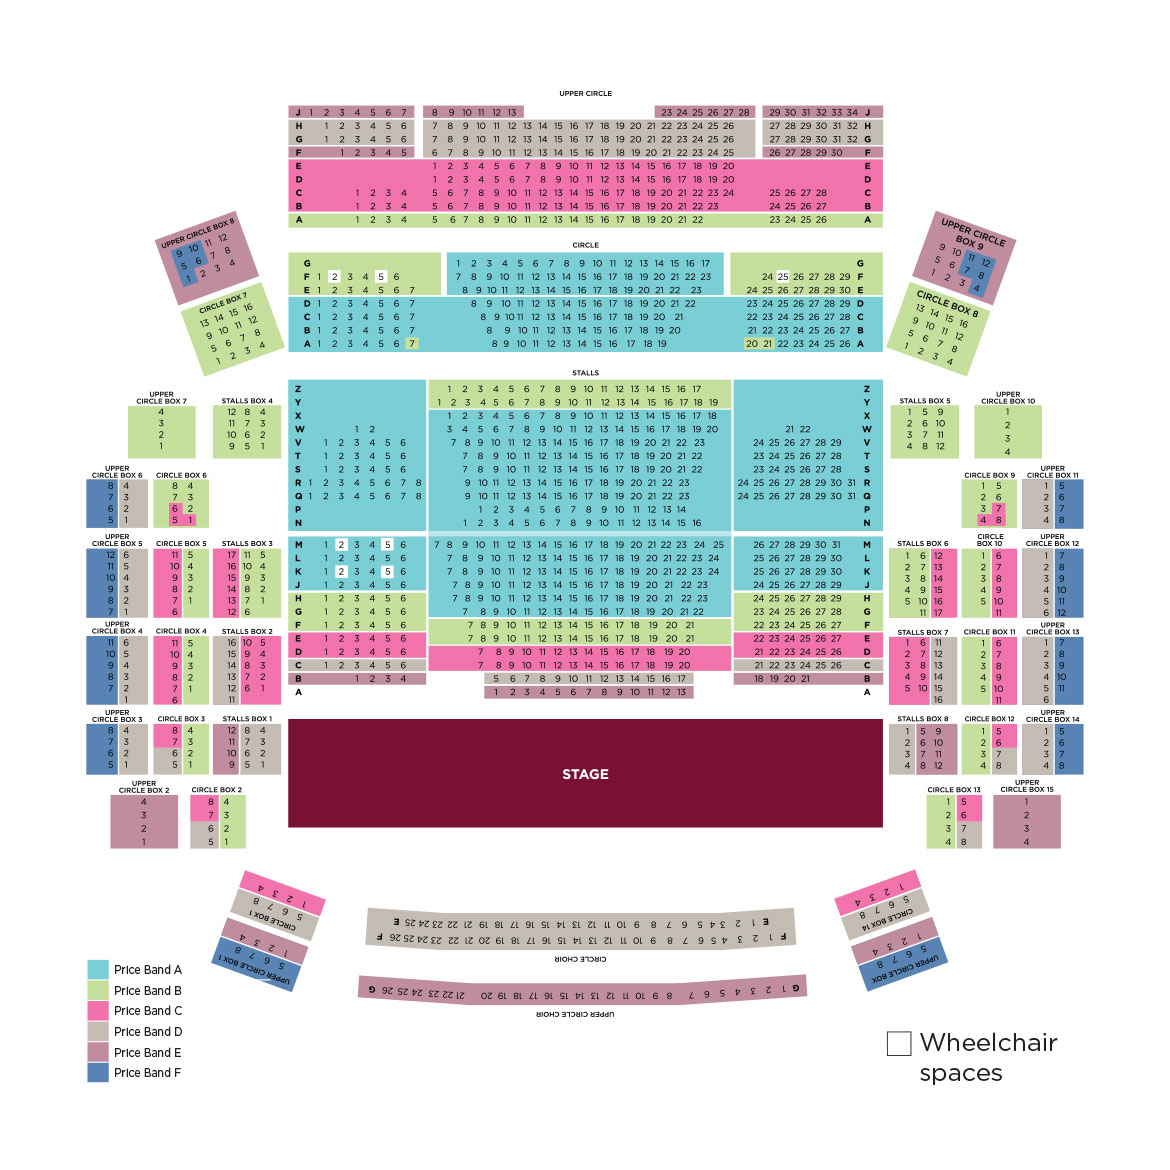 Flynn Theatre Seating Chart Brokeasshome Com